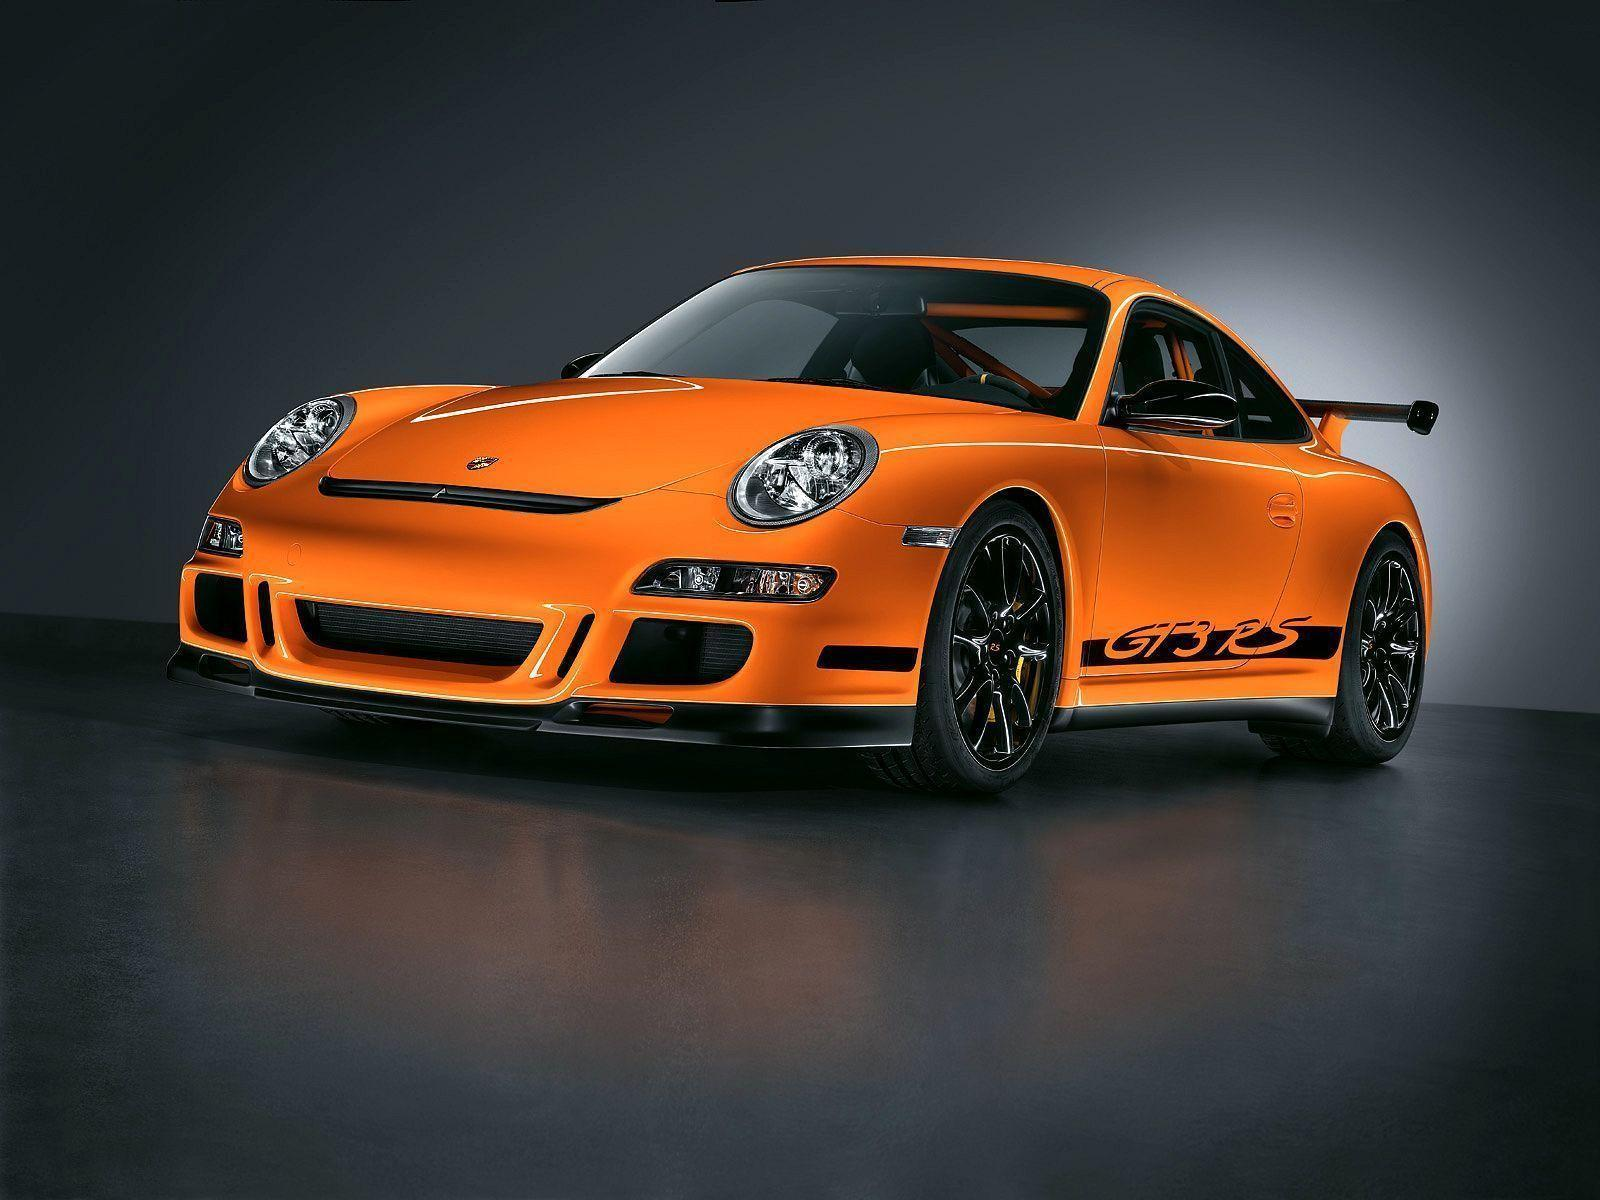 Image For > Porsche 911 Gt3 Wallpapers